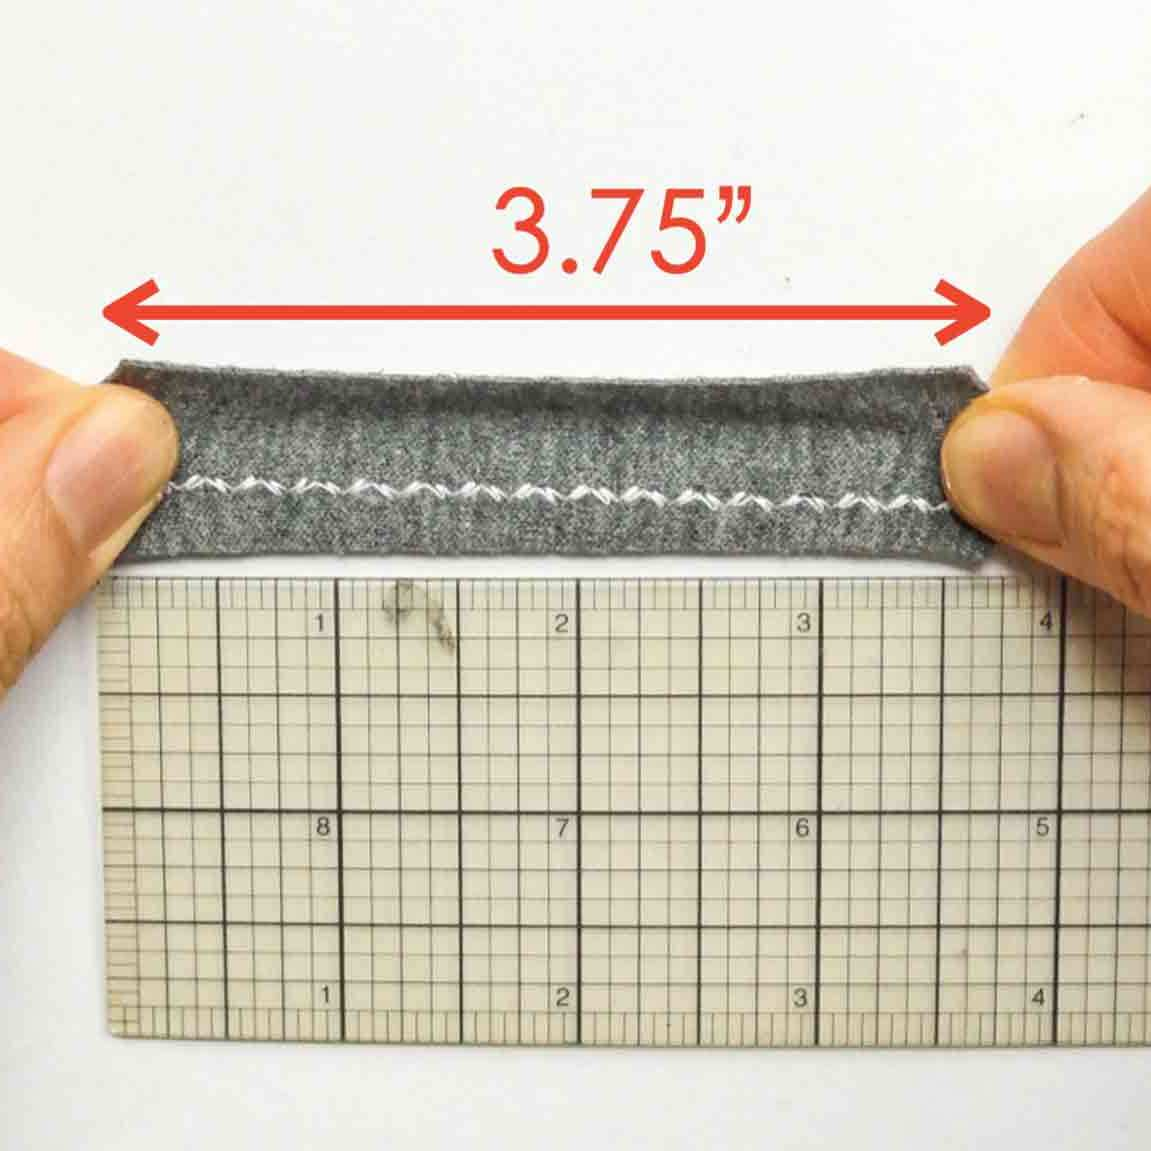 Reinforced zigzag stitch stretched out, measuring 3.75 inches